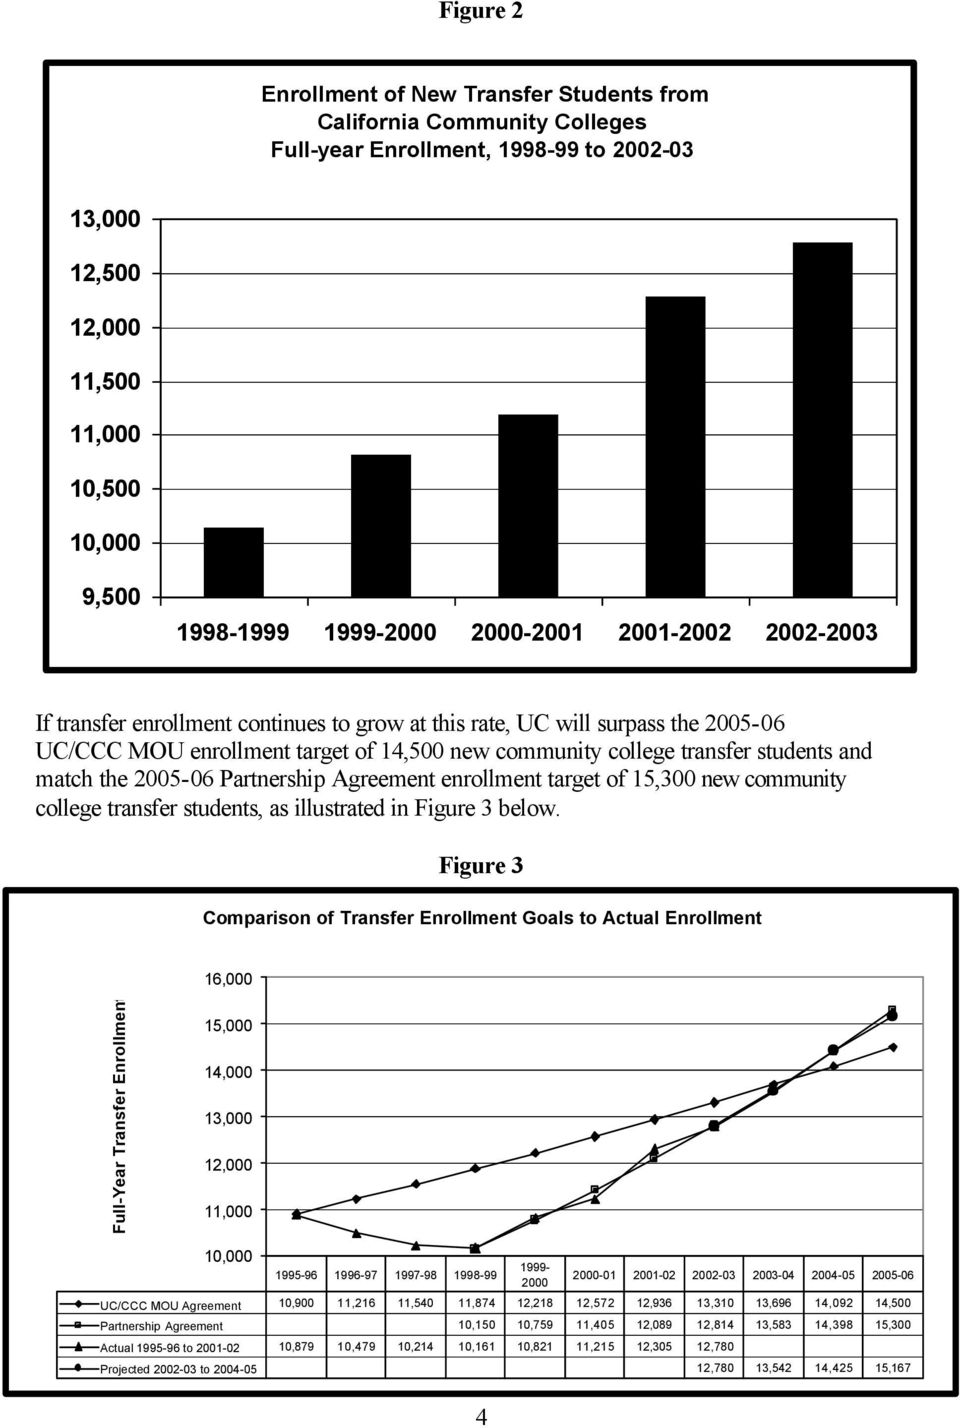 match the 2005-06 Partnership Agreement enrollment target of 15,300 new community college transfer students, as illustrated in Figure 3 below.